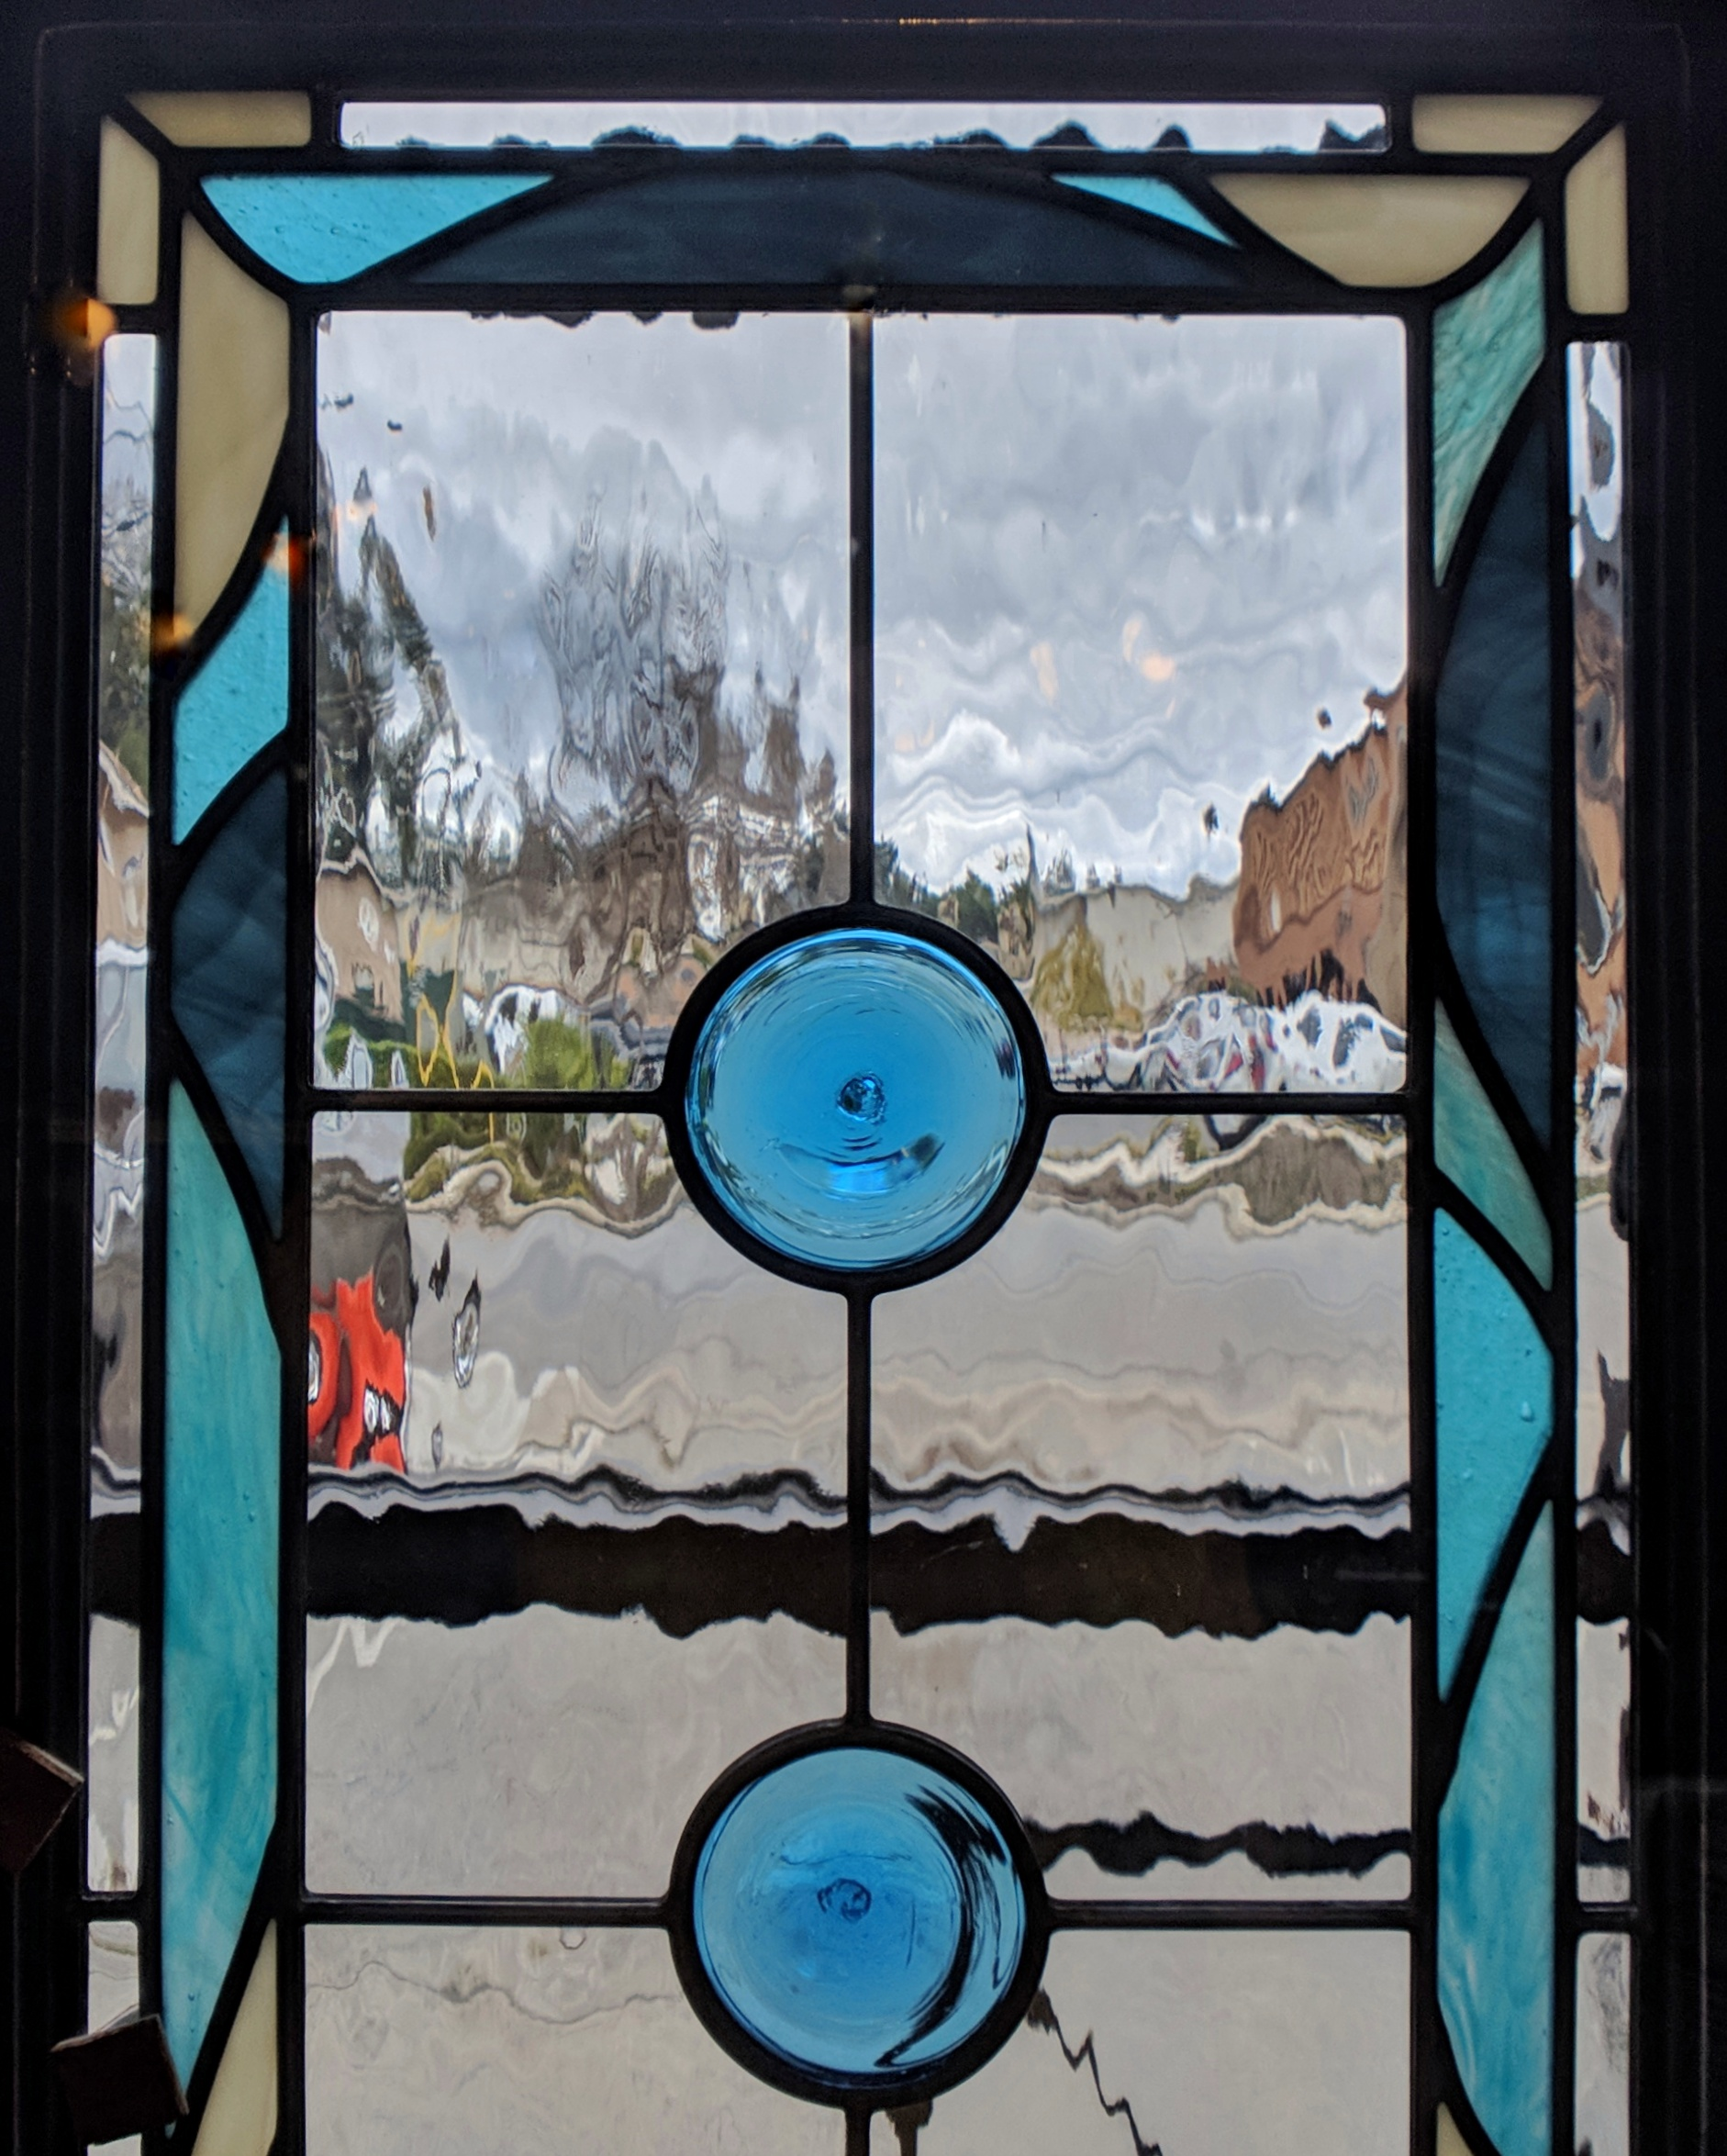 stained glass leaded glass design legacy glass studios menlo park bay area california custom design insulated window waterglass mouth blown rondel craftsman home ocean inspired spa bathroom close up.jpeg